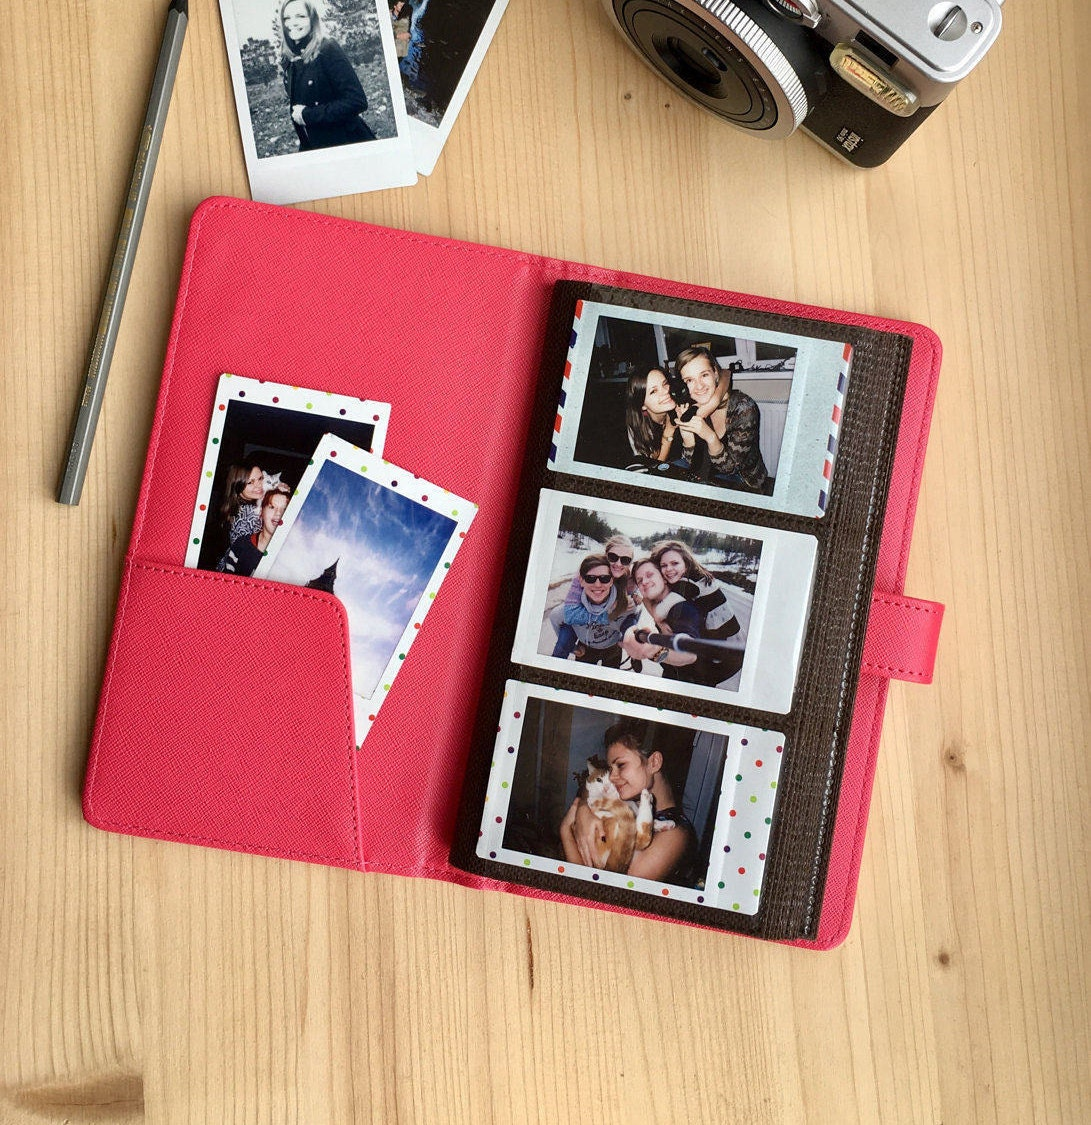 instax photo album for instax mini size instax photo album. Black Bedroom Furniture Sets. Home Design Ideas